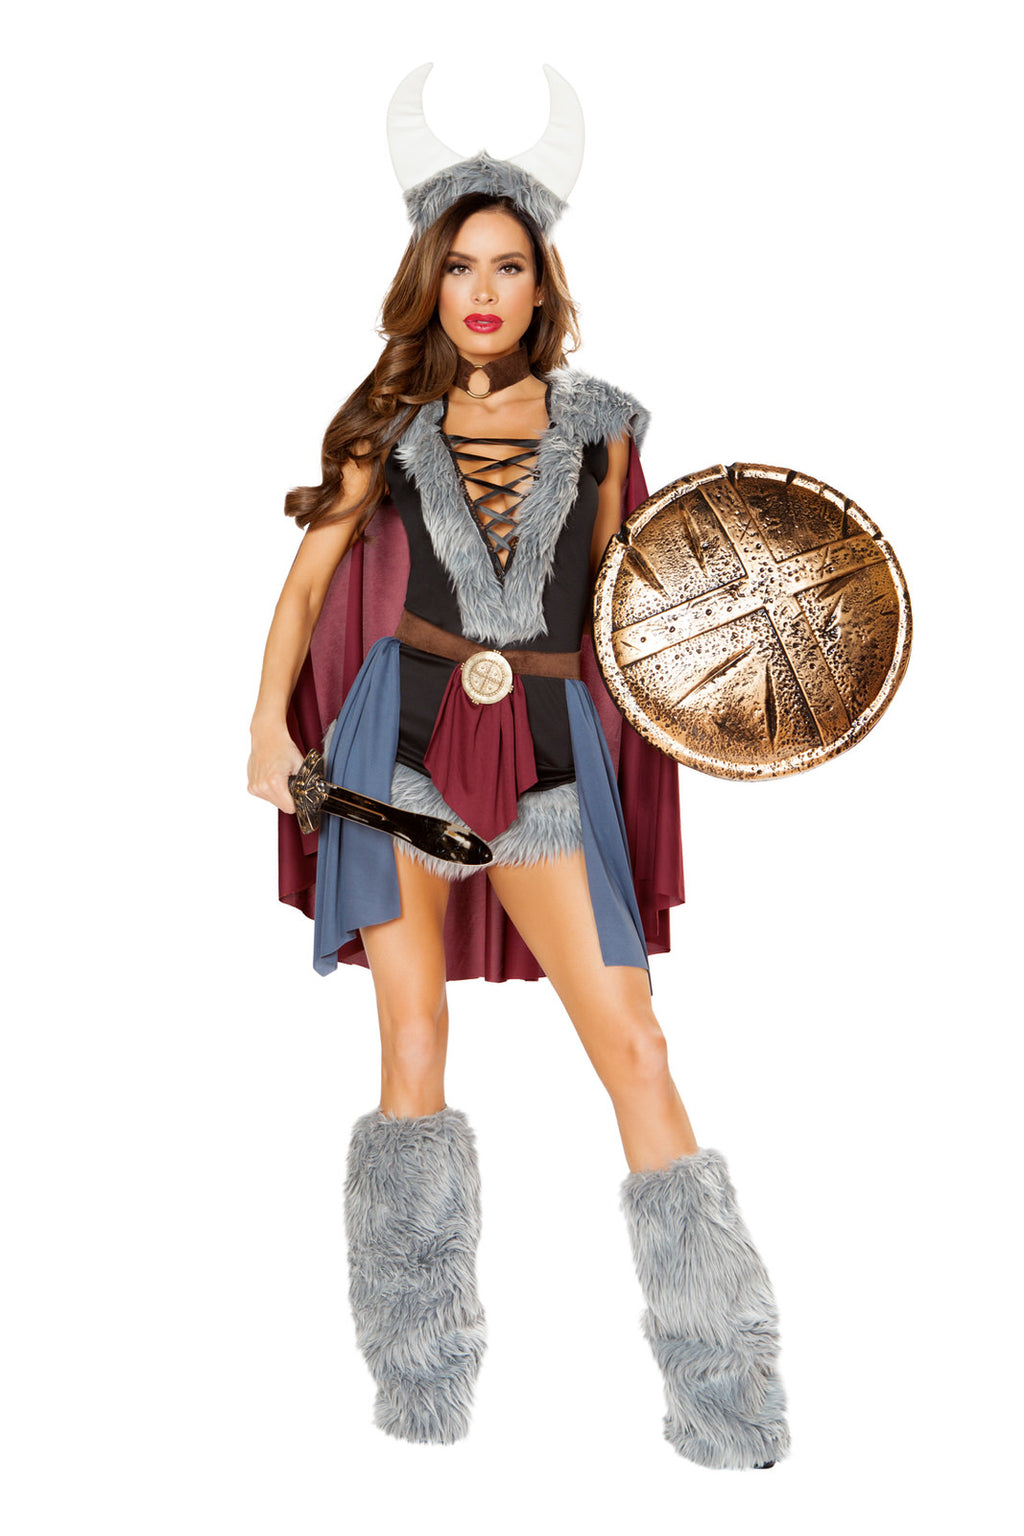 5-PC-Viking-Warrior-Lady-Lace-Up-Dress-&-Cape-w/-Accessories-Party-Costume